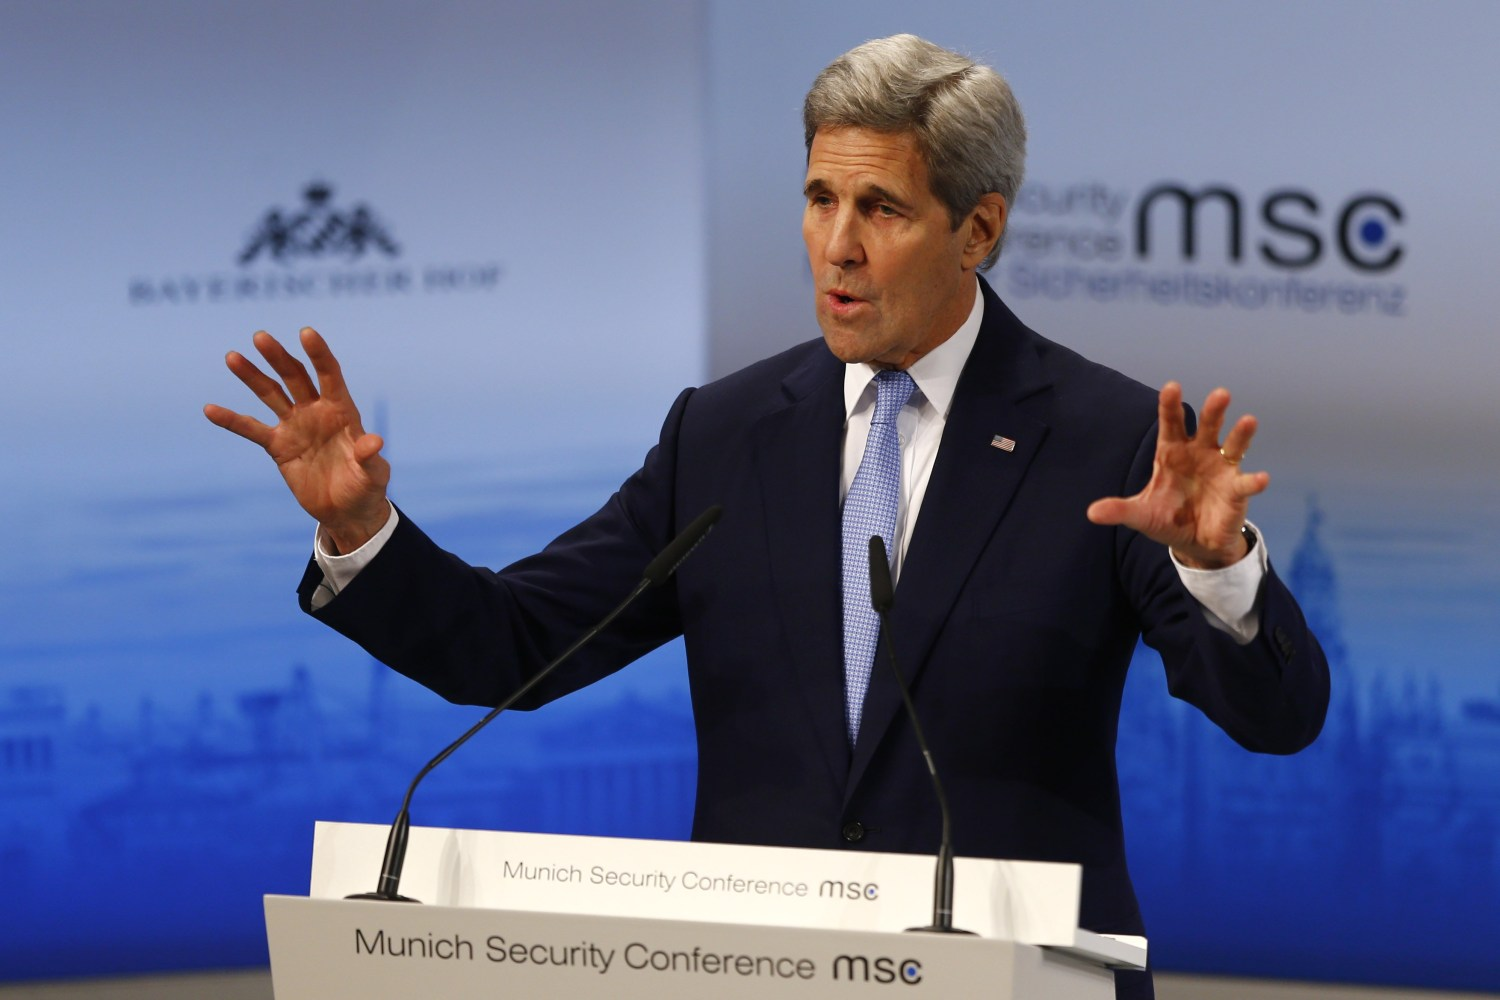 Image result for 54th Munich Security Conference, John Kerry, others, photos